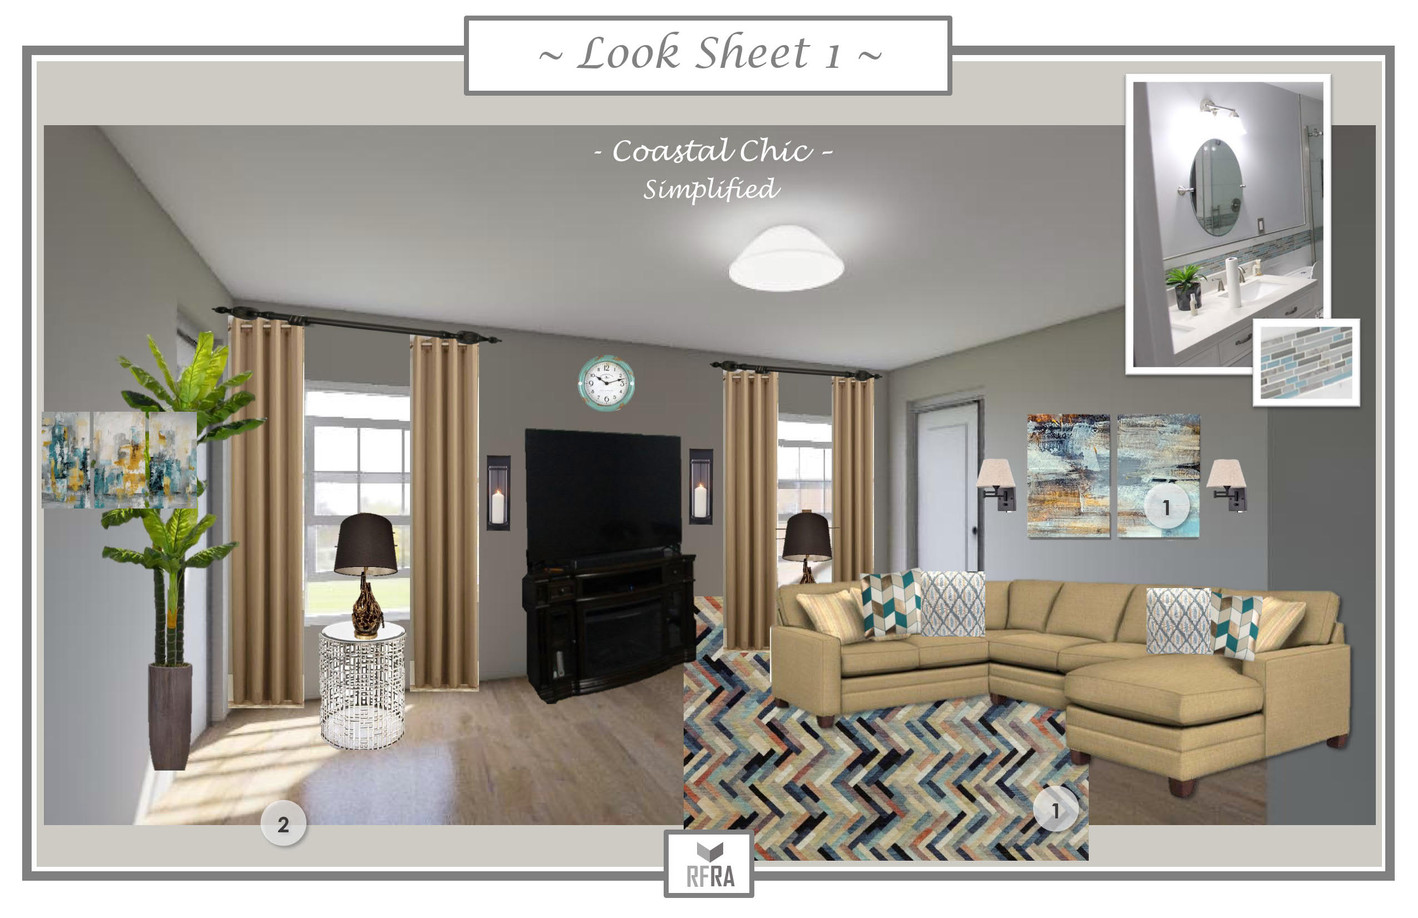 Costal Chic Style Sheet 1.jpg